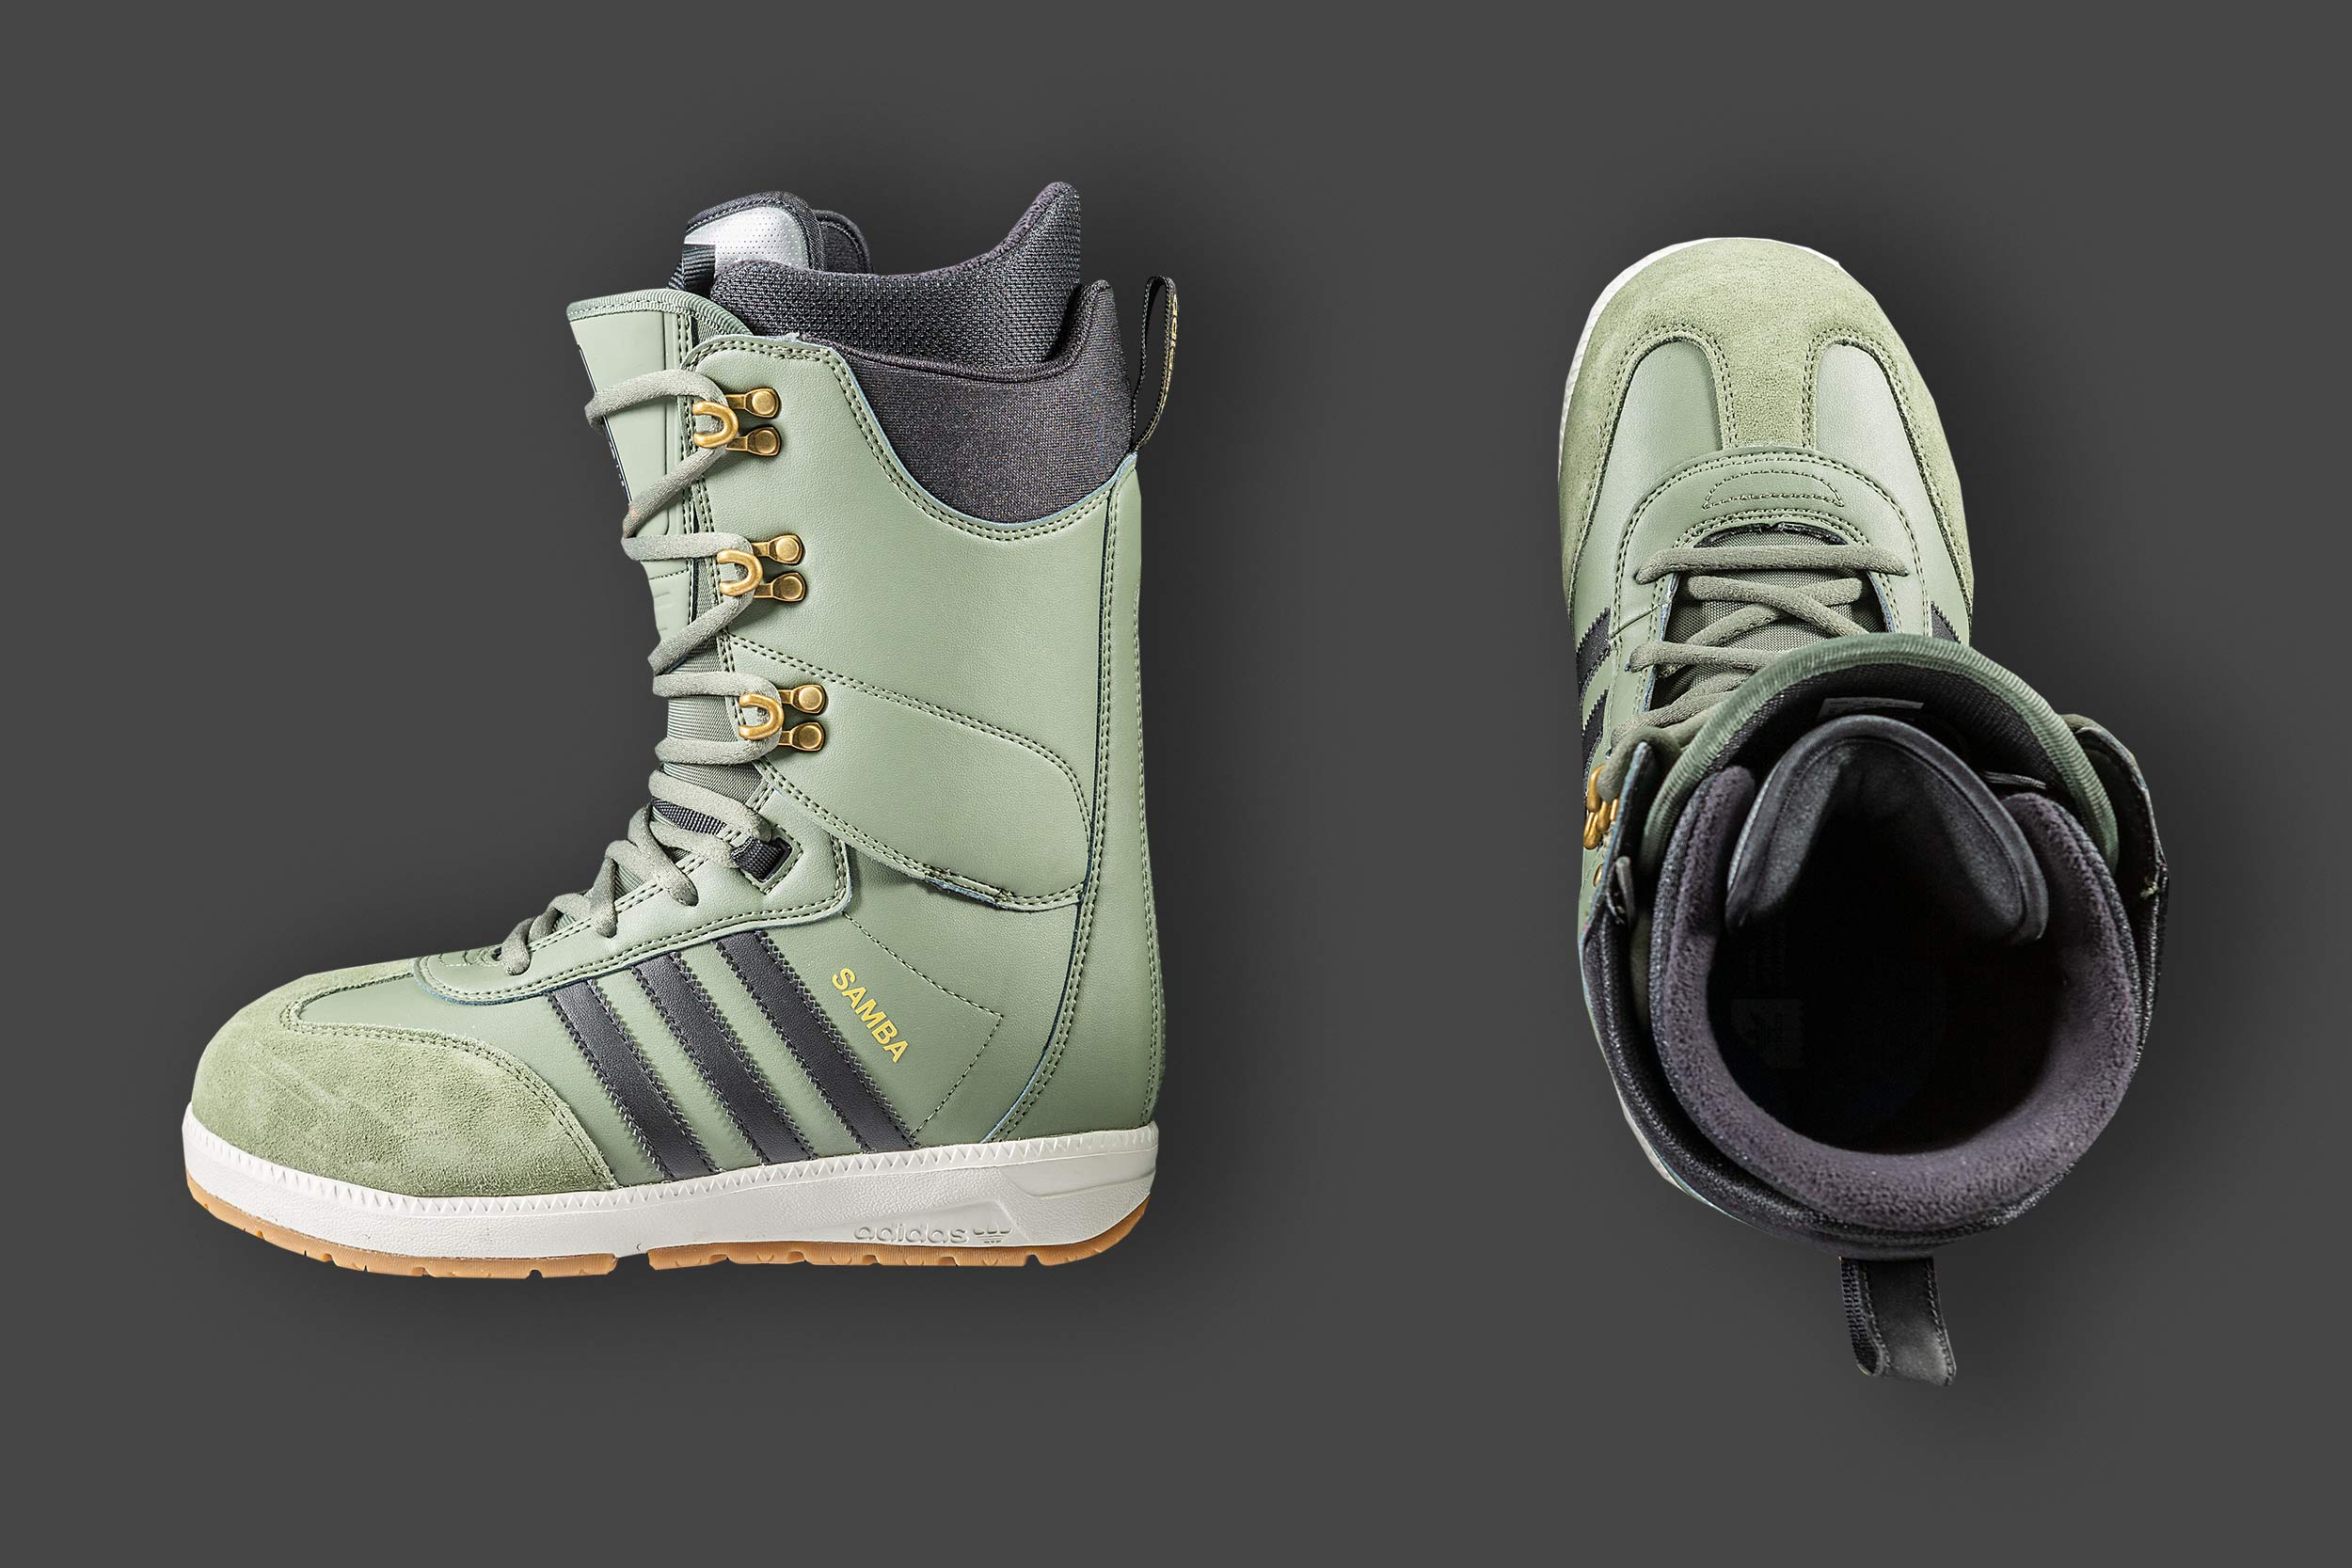 6a1cb749f48 adidas Snowboarding: Holiday Gift Guide 2019 | Snowboarder Magazine